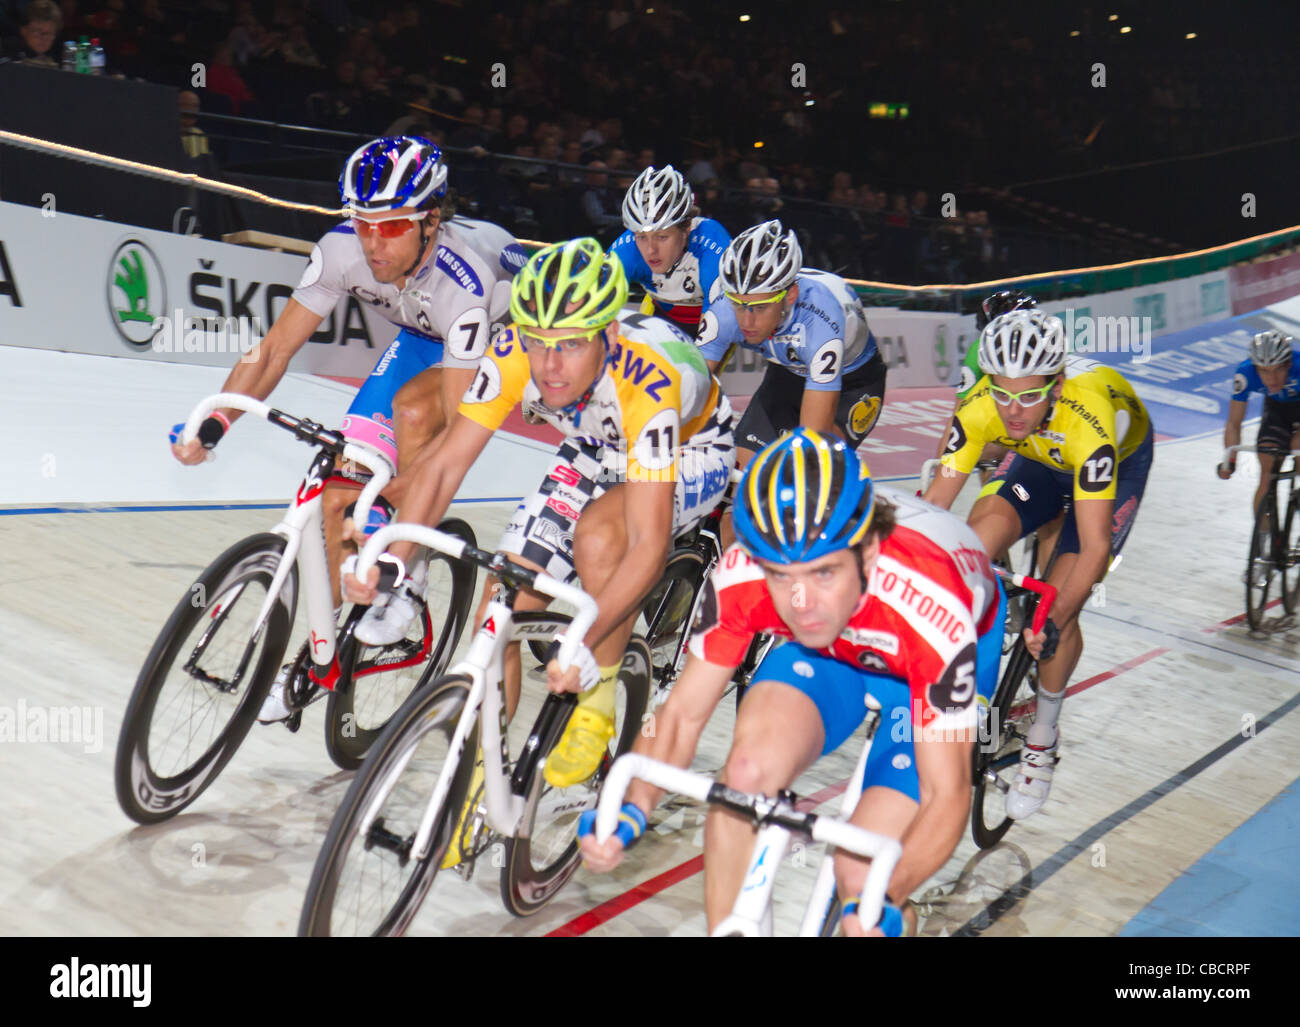 athletes fight for victory at indoor bike challenge Sixday-Nights Zürich 2011 at Zurich Hallenstadion - Stock Image